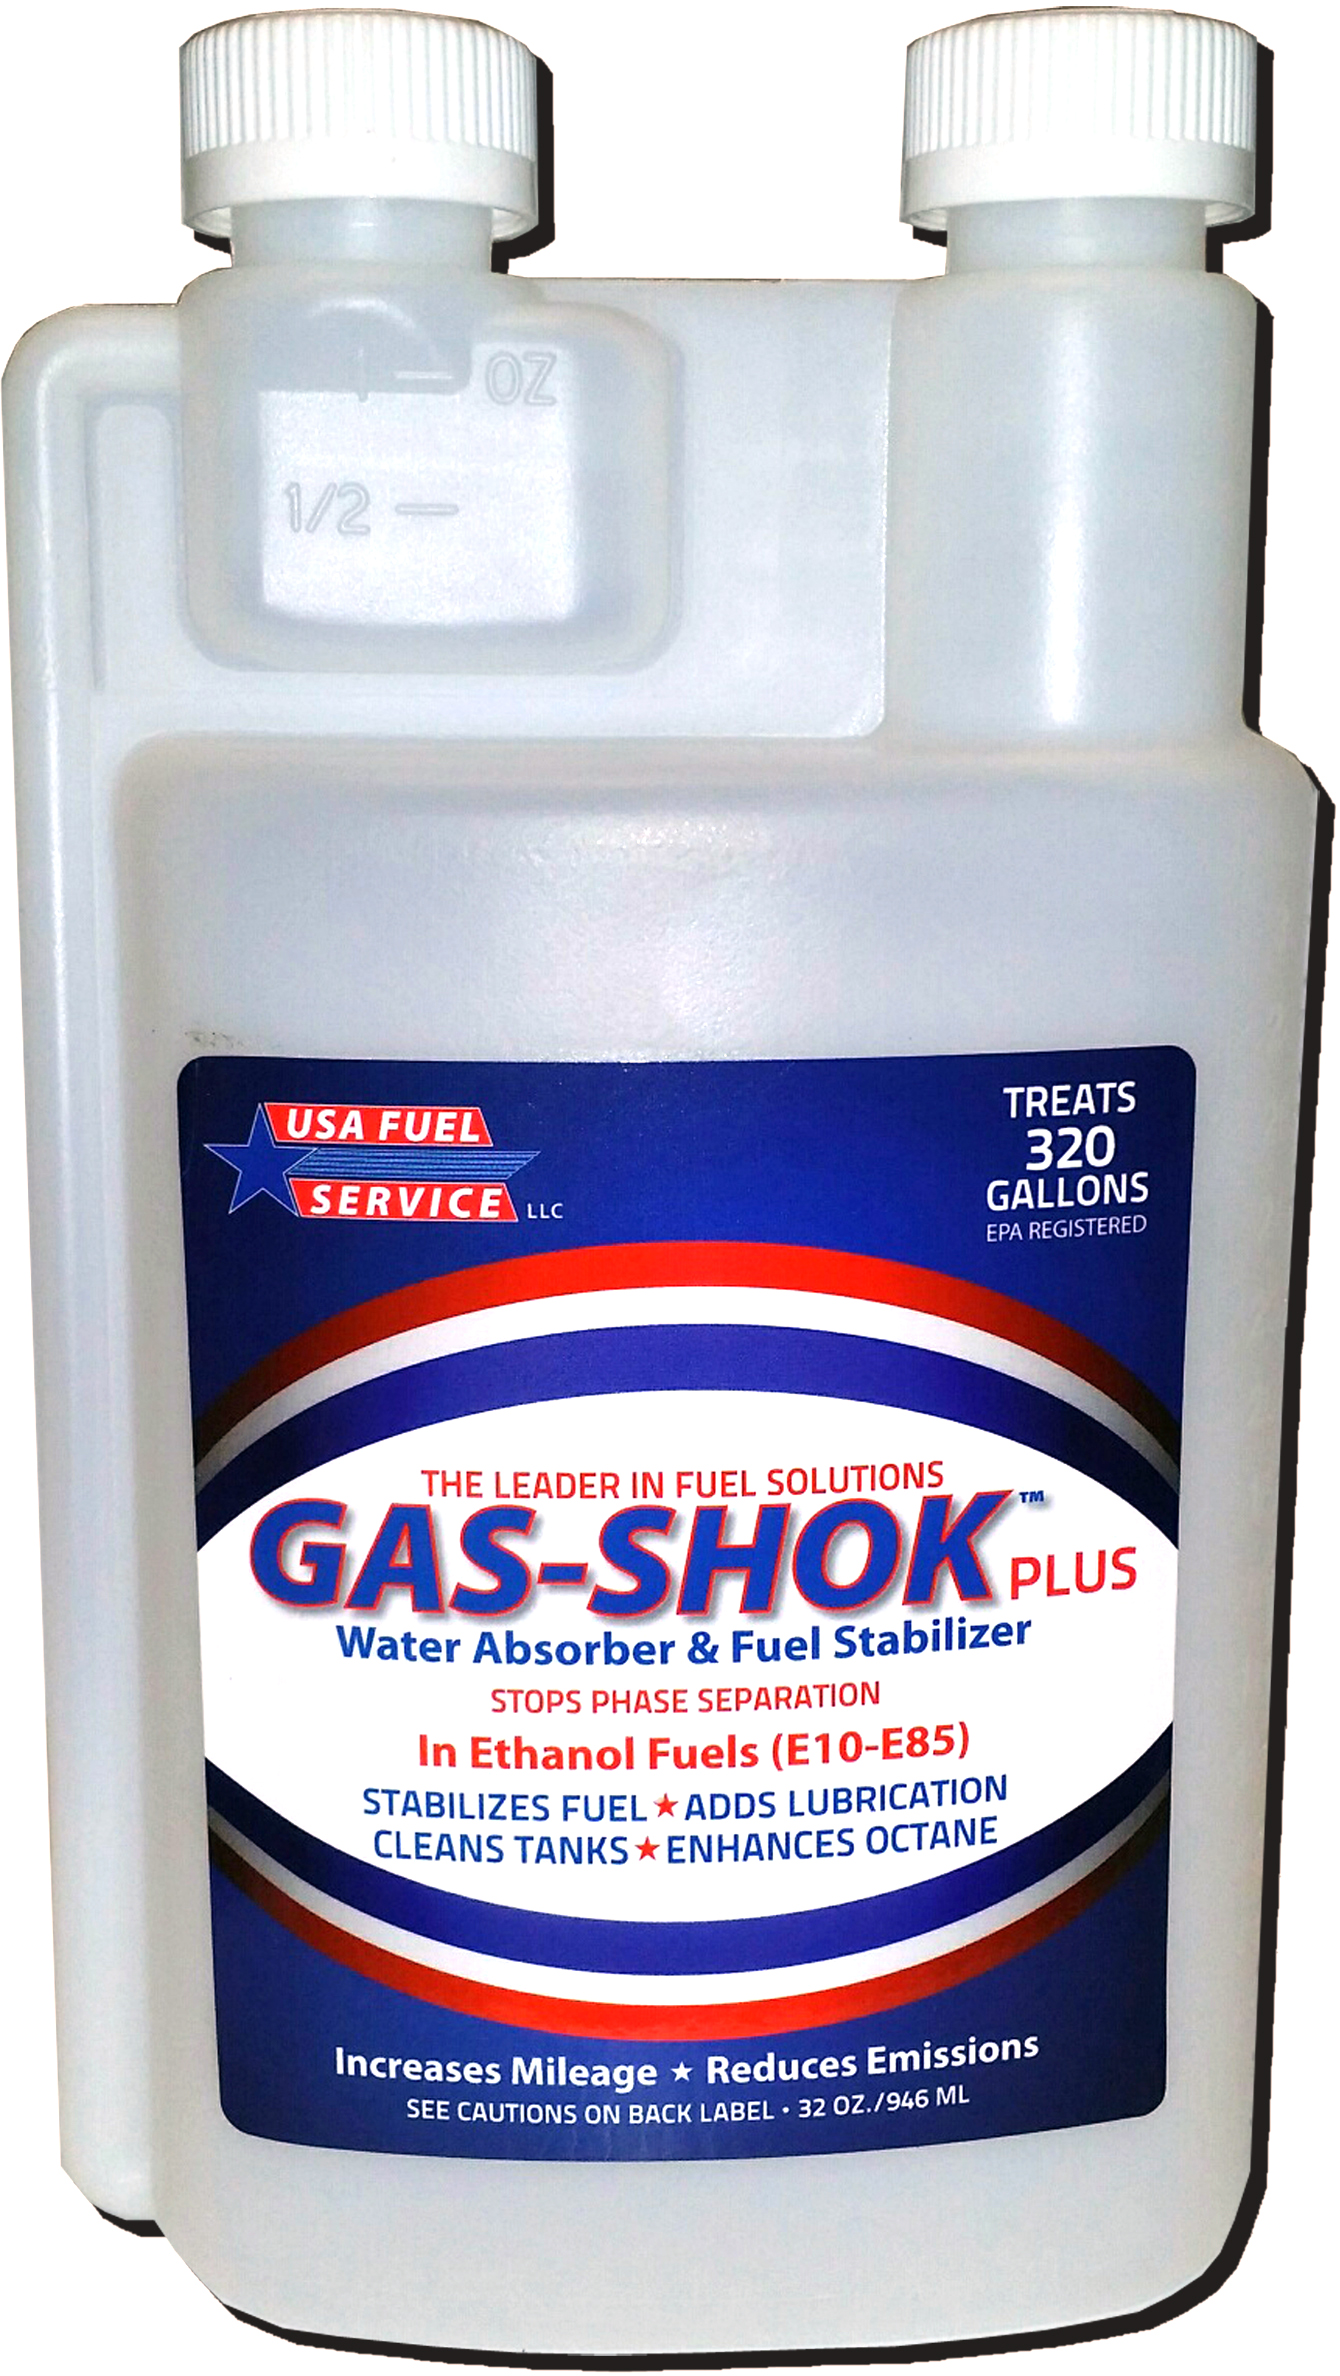 Gas Shok Is A Premium Grade Multi Function Fuel Additive For Use In 2 4 Stroke Engines Using Regular Gasoline Or Ethanol Blended Gasolines